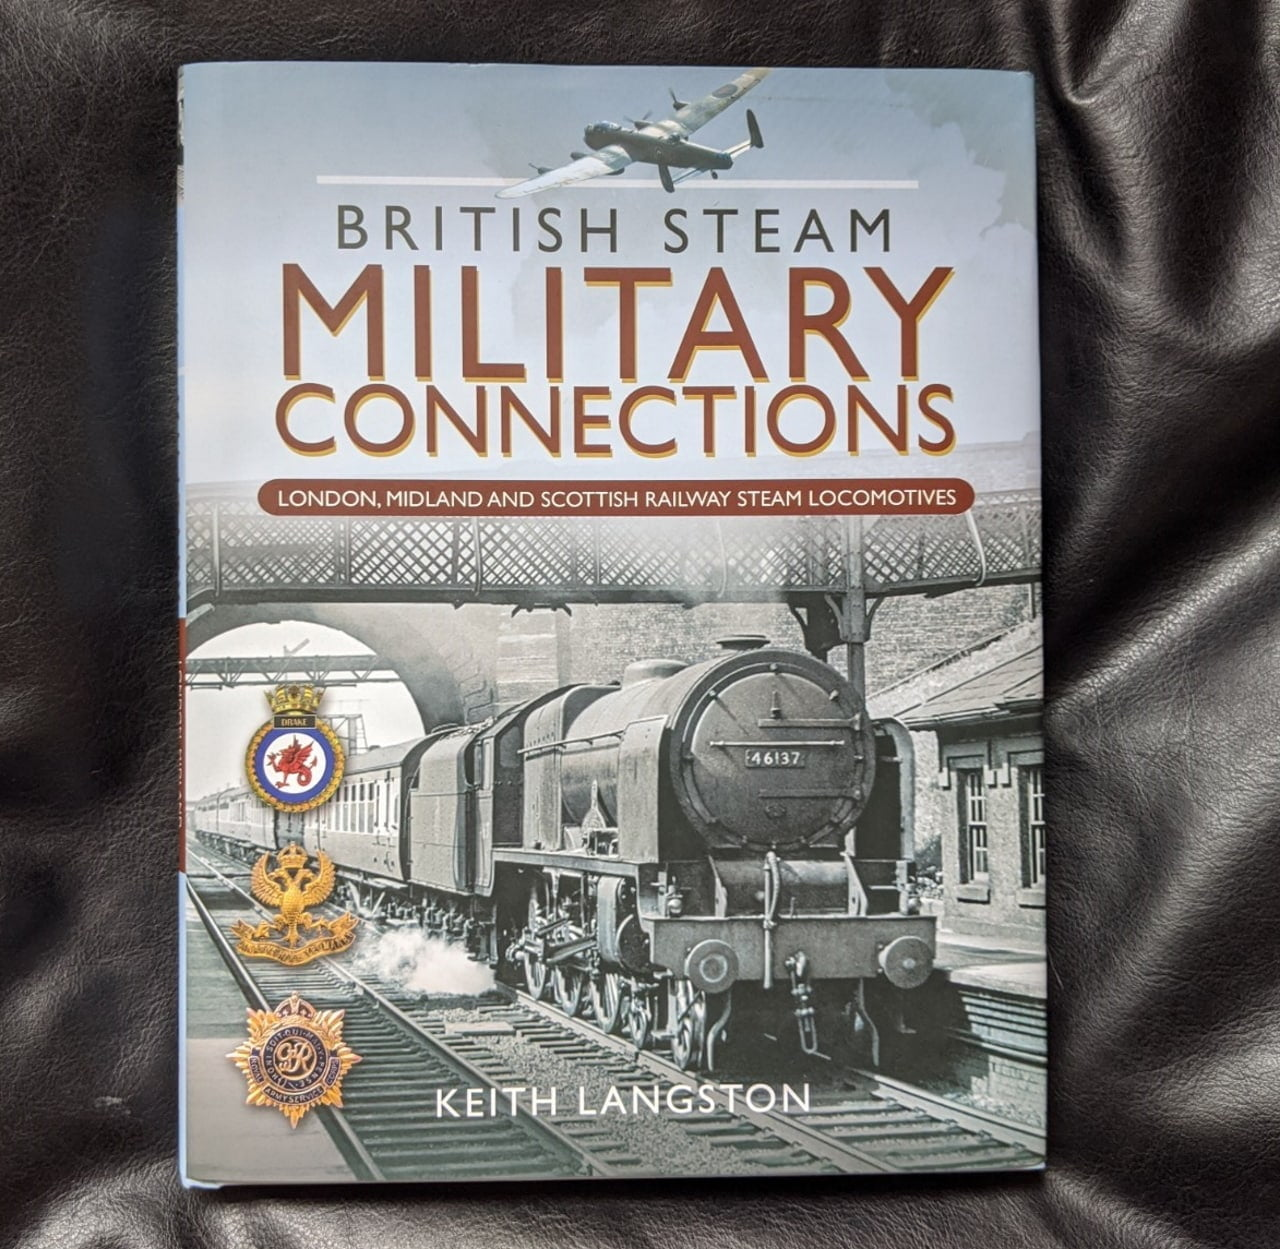 British Steam Military Connections London Midland and Scottish Railways steam locomotives